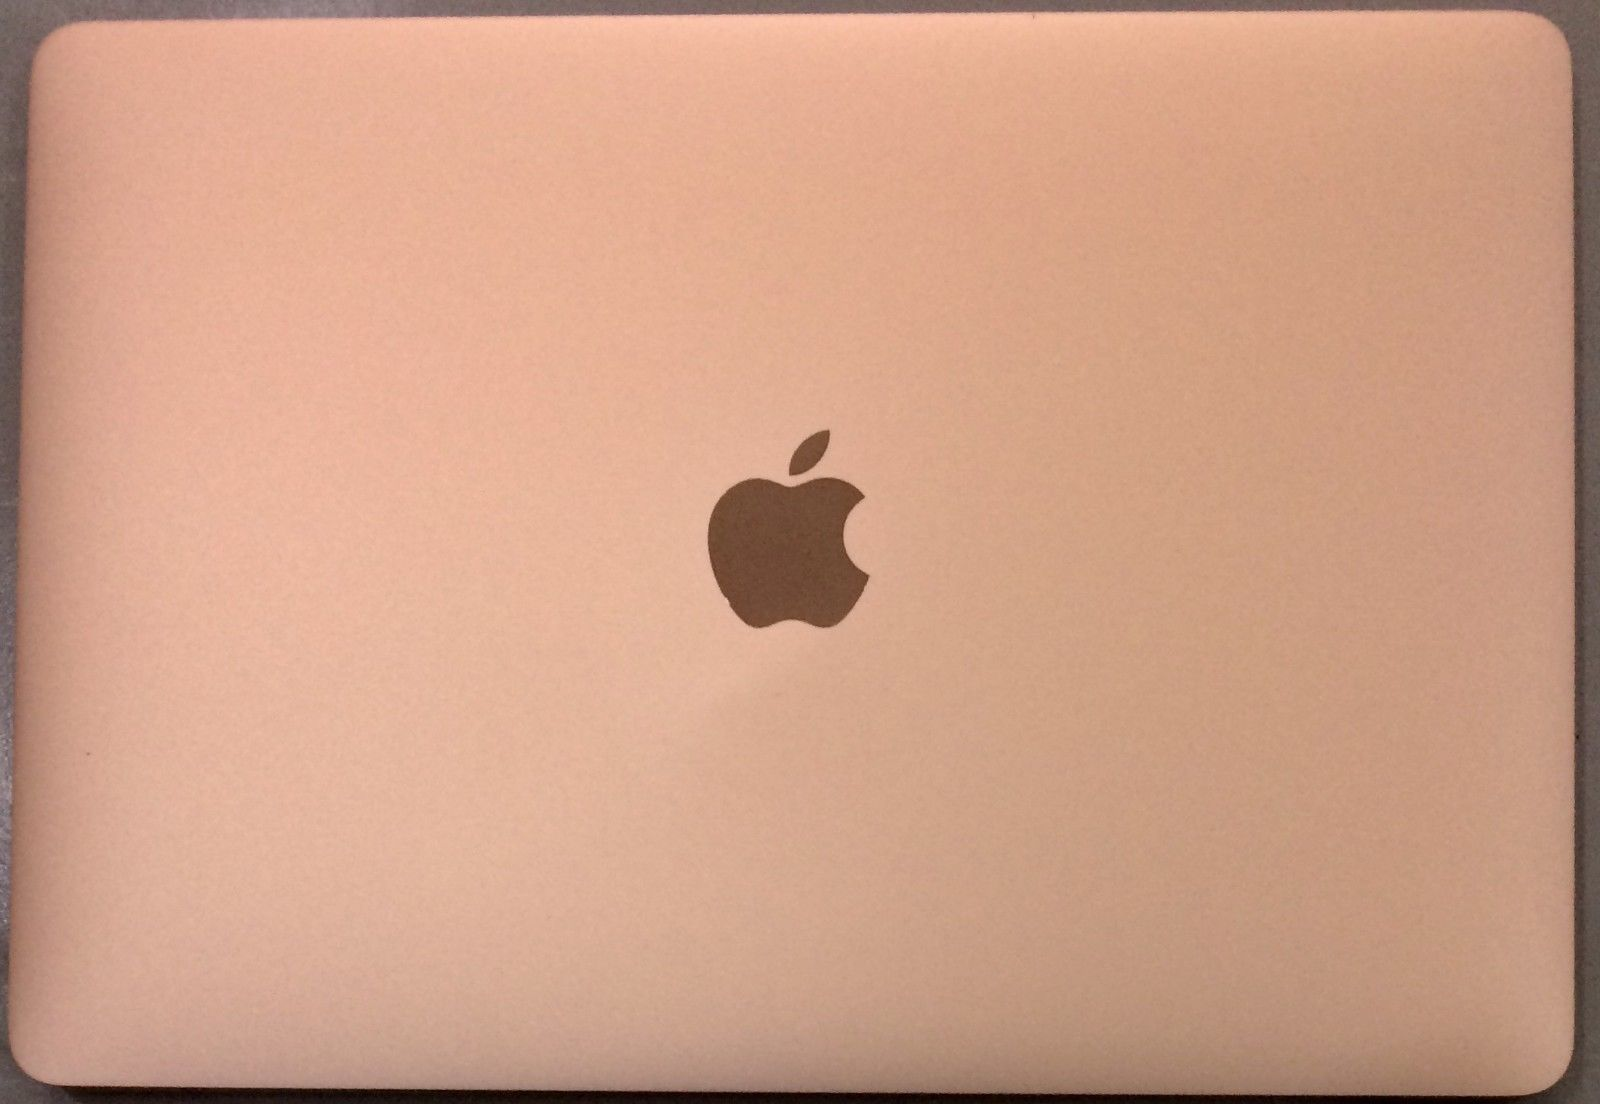 Apple MacBook Air 13 3 Intel i5 1 6 GHz 2018 | Mac Ansys